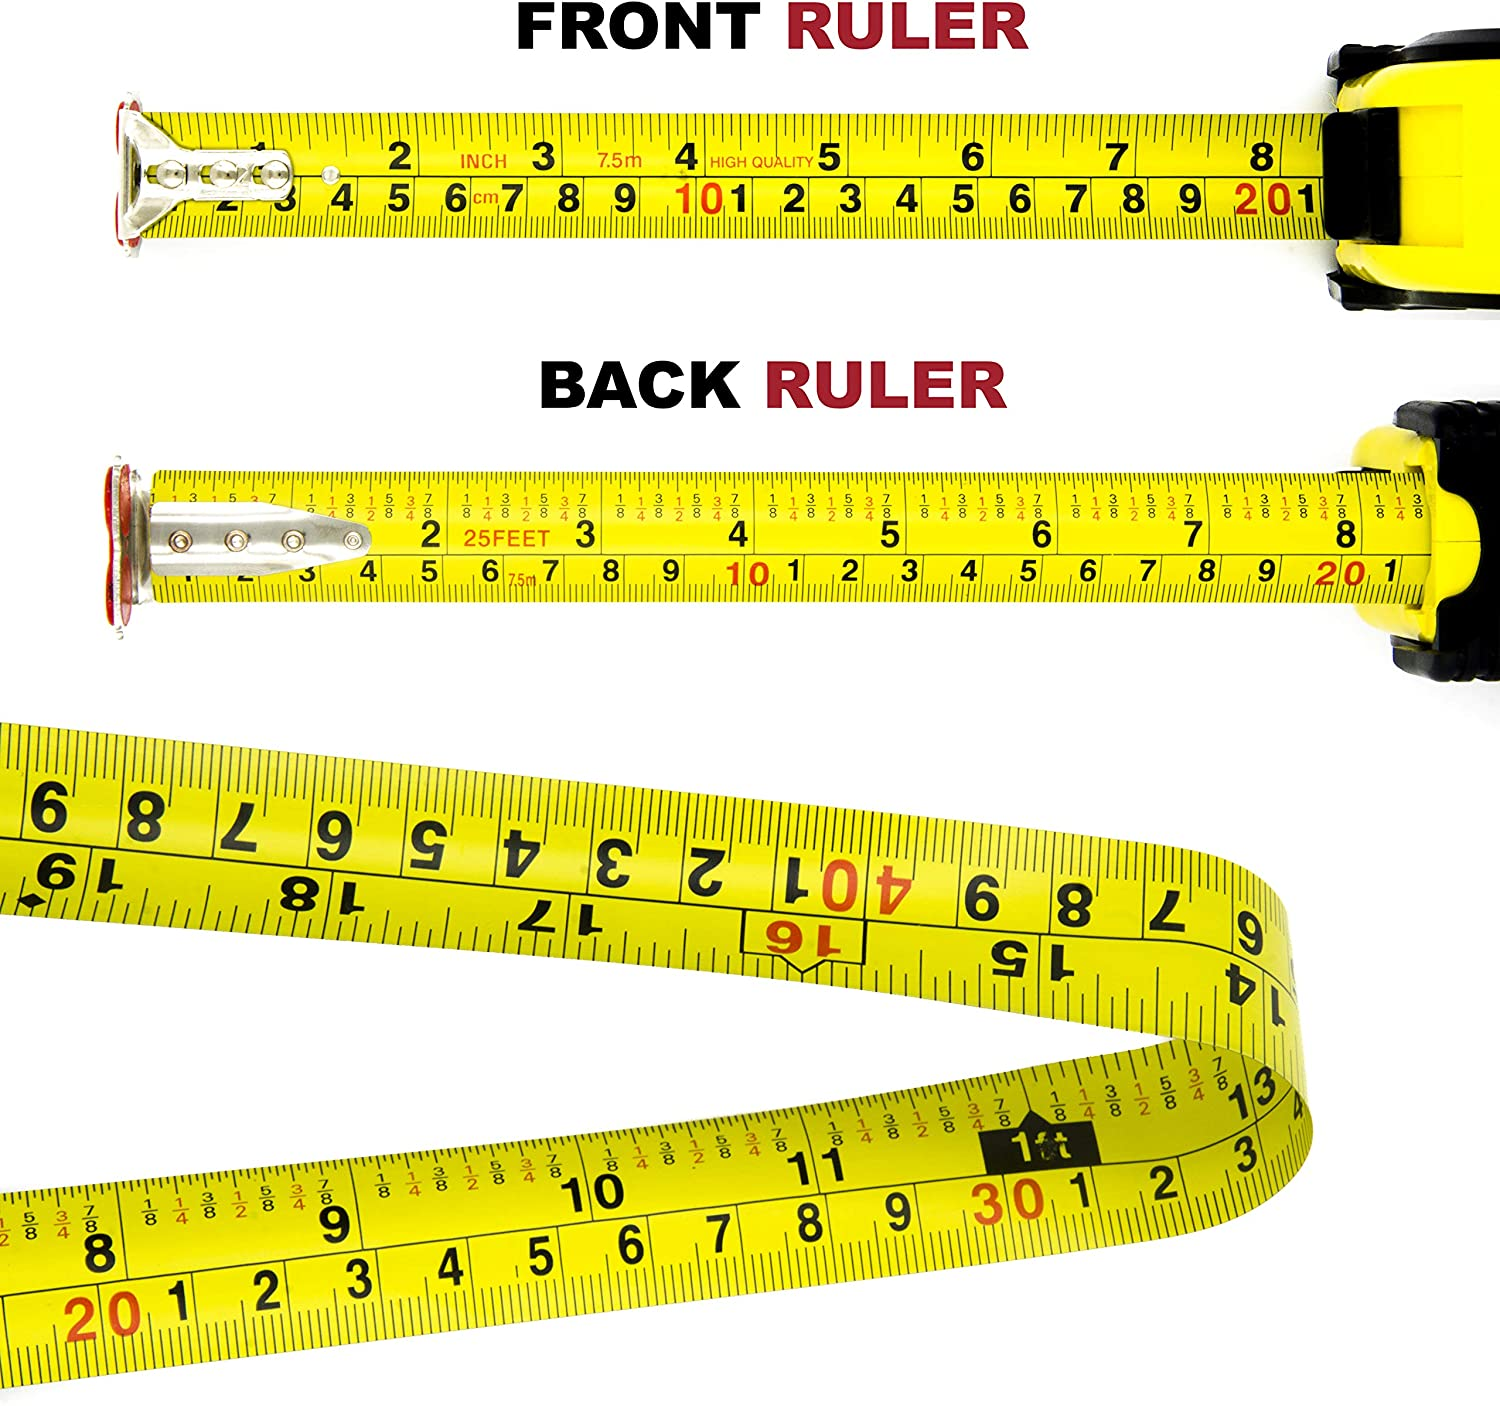 Measuring Tape Measure By Kutir Heavy Duty Metric Retractable EASY TO READ 25 Foot BOTH SIDE DUAL RULER MAGNETIC HOOK SHOCK ABSORBENT Solid Rubber Case STURDY Inches and Imperial Measurement